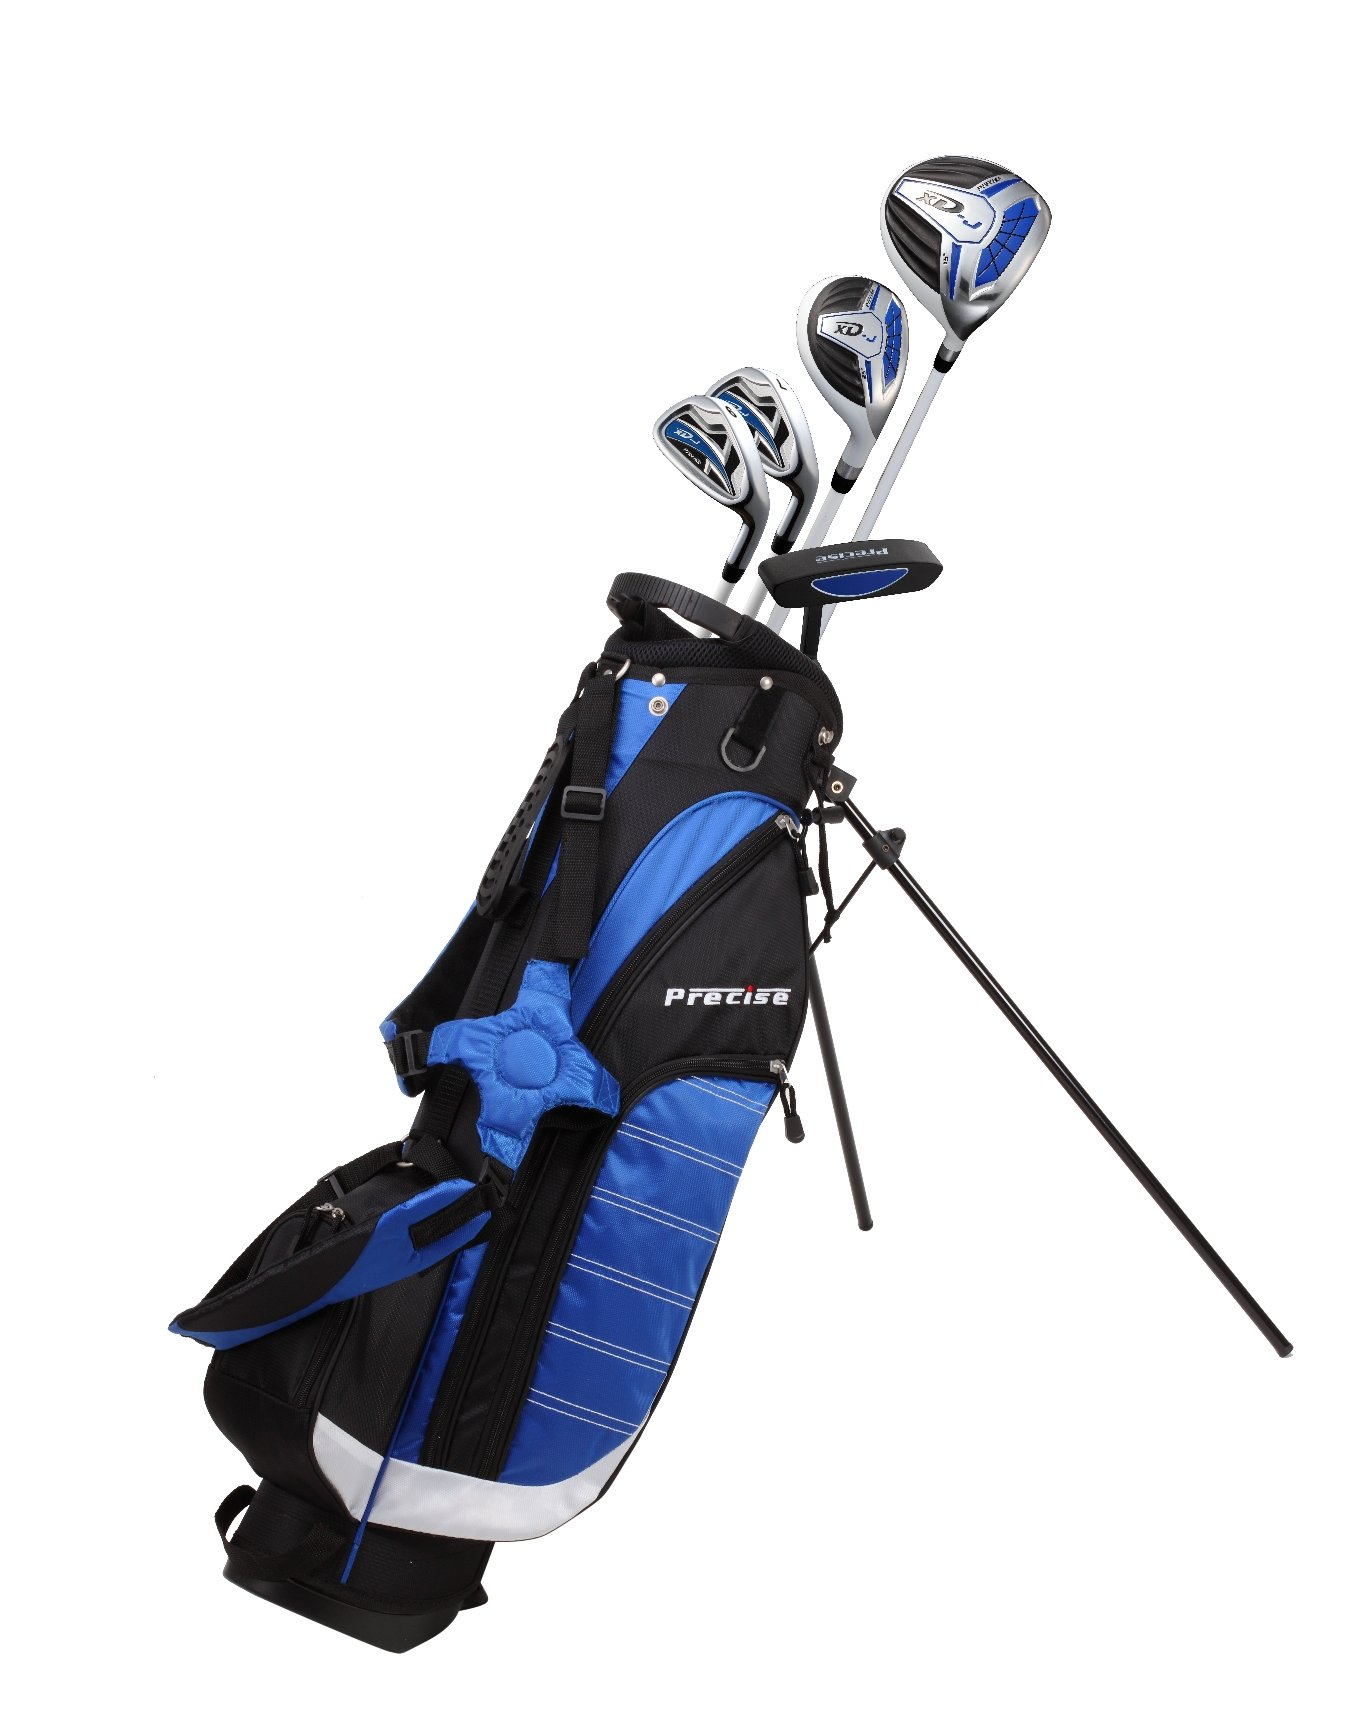 Precise XD-J Junior Complete Golf Club Set for Children Kids - 3 Age Groups Boys & Girls - Right Hand & Left Hand! (Blue Ages 9-12, Right Hand) by PreciseGolf Co.